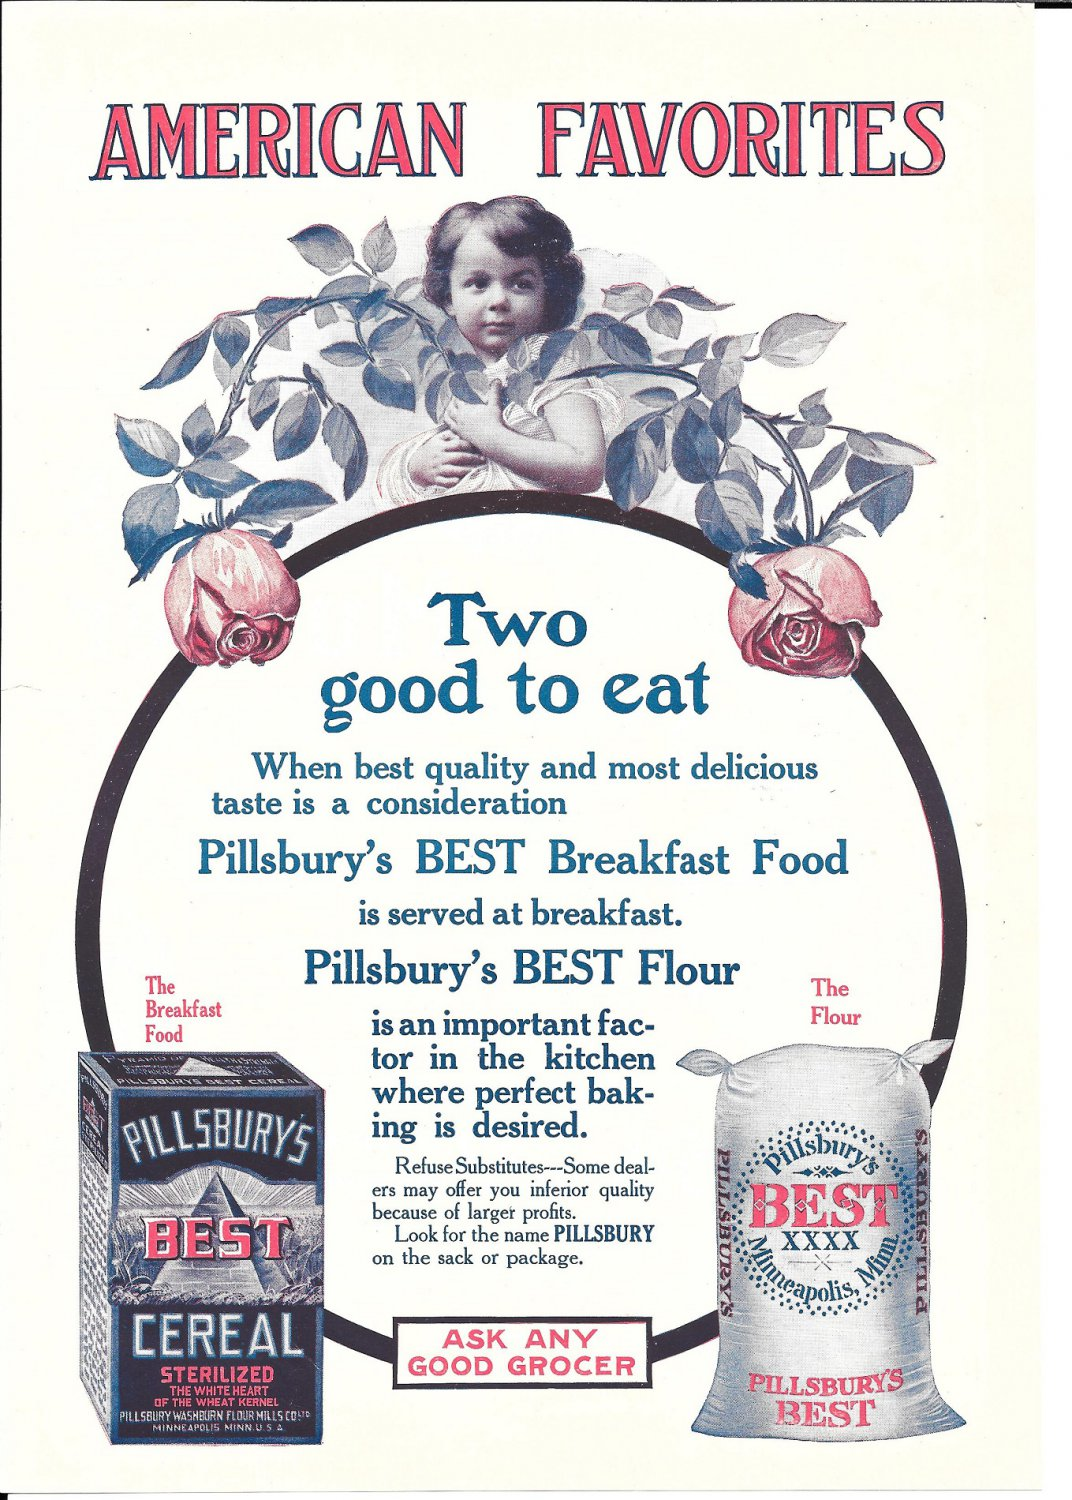 1897 Pillsbury's Best Breakfast Food & Flour American Favorites Ad